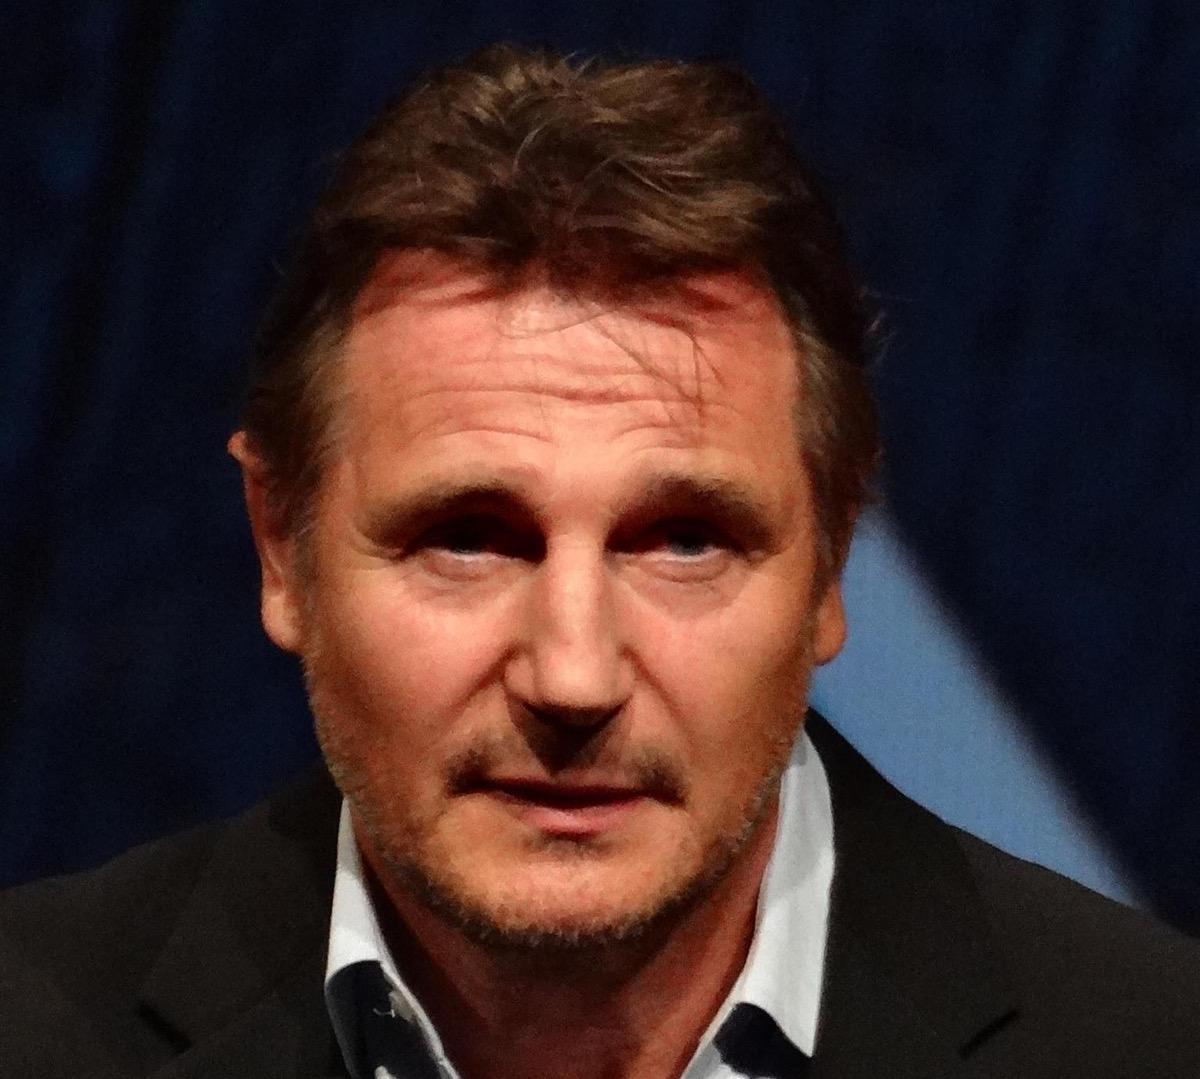 Liam Neeson at the Festival Deauville in 2012 (Elen Nivrae/Flickr/CC)